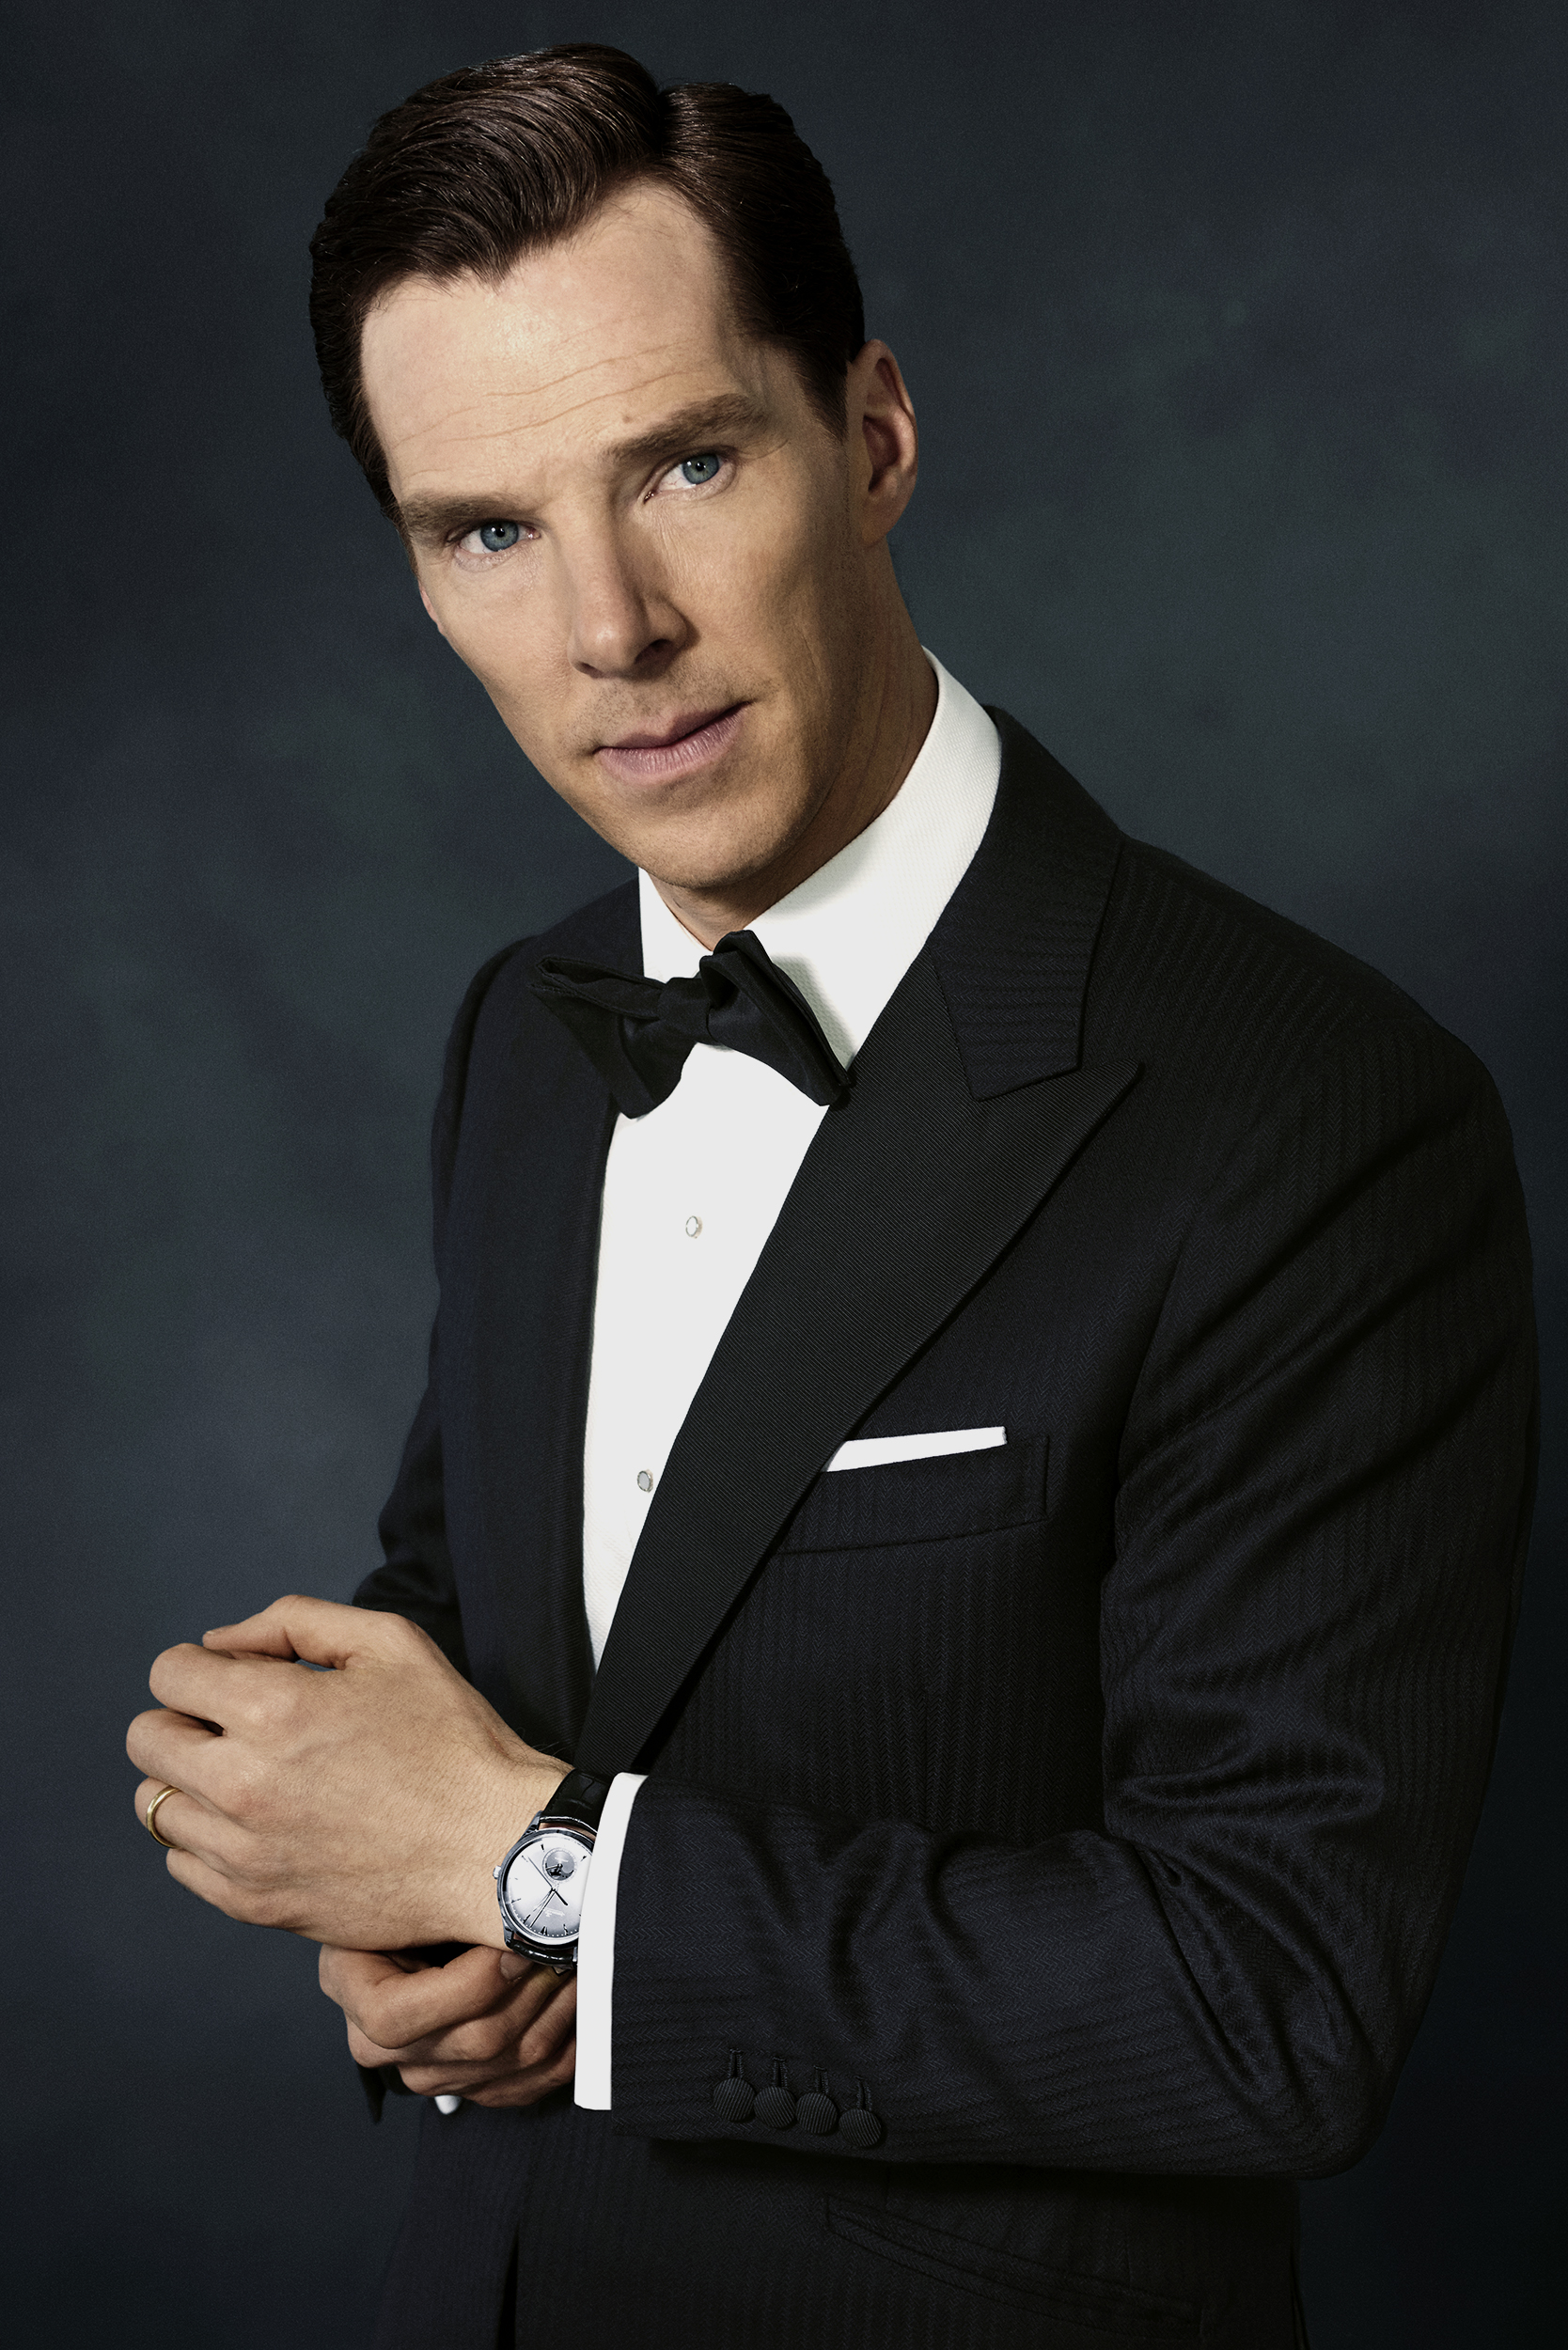 Benedict Cumberbatch_405 low res.jpg